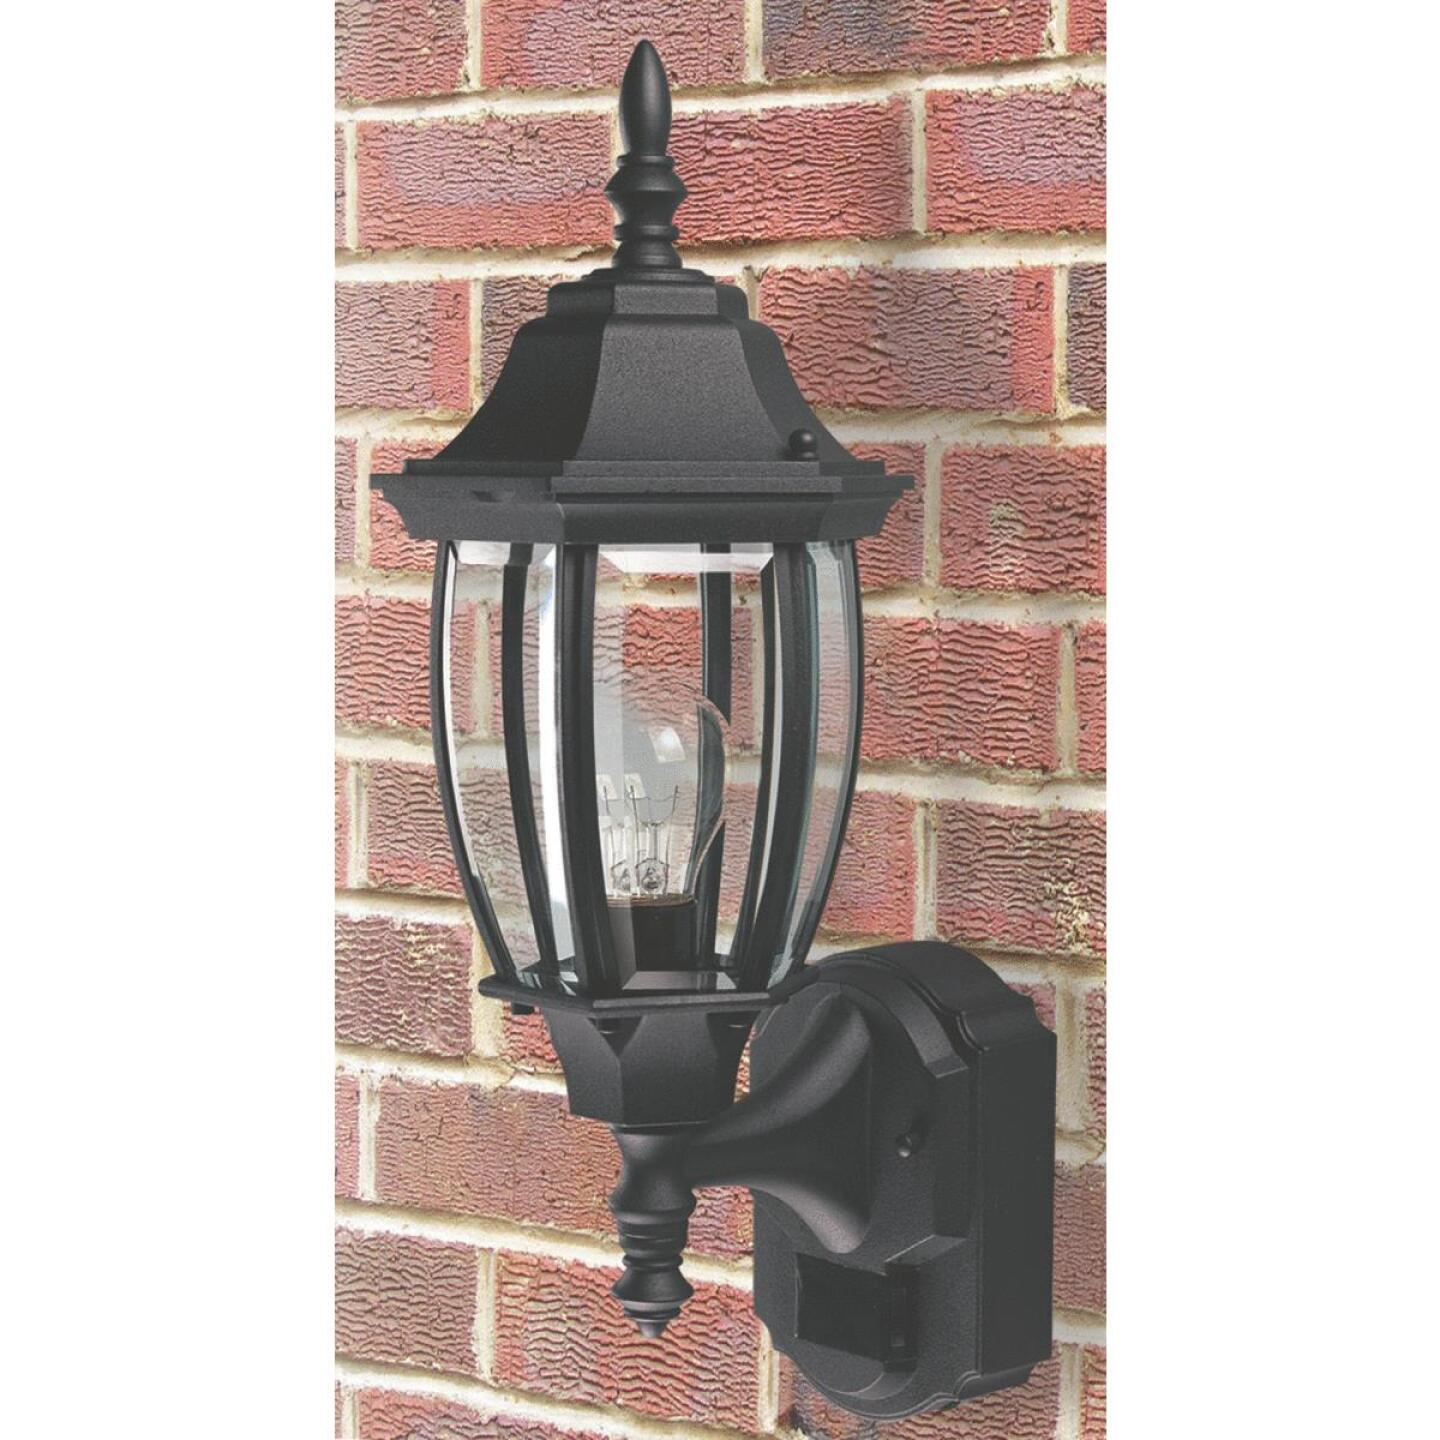 Heath Zenith Black Incandescent Dusk-To-Dawn/Motion Activated Outdoor Wall Light Fixture Image 2